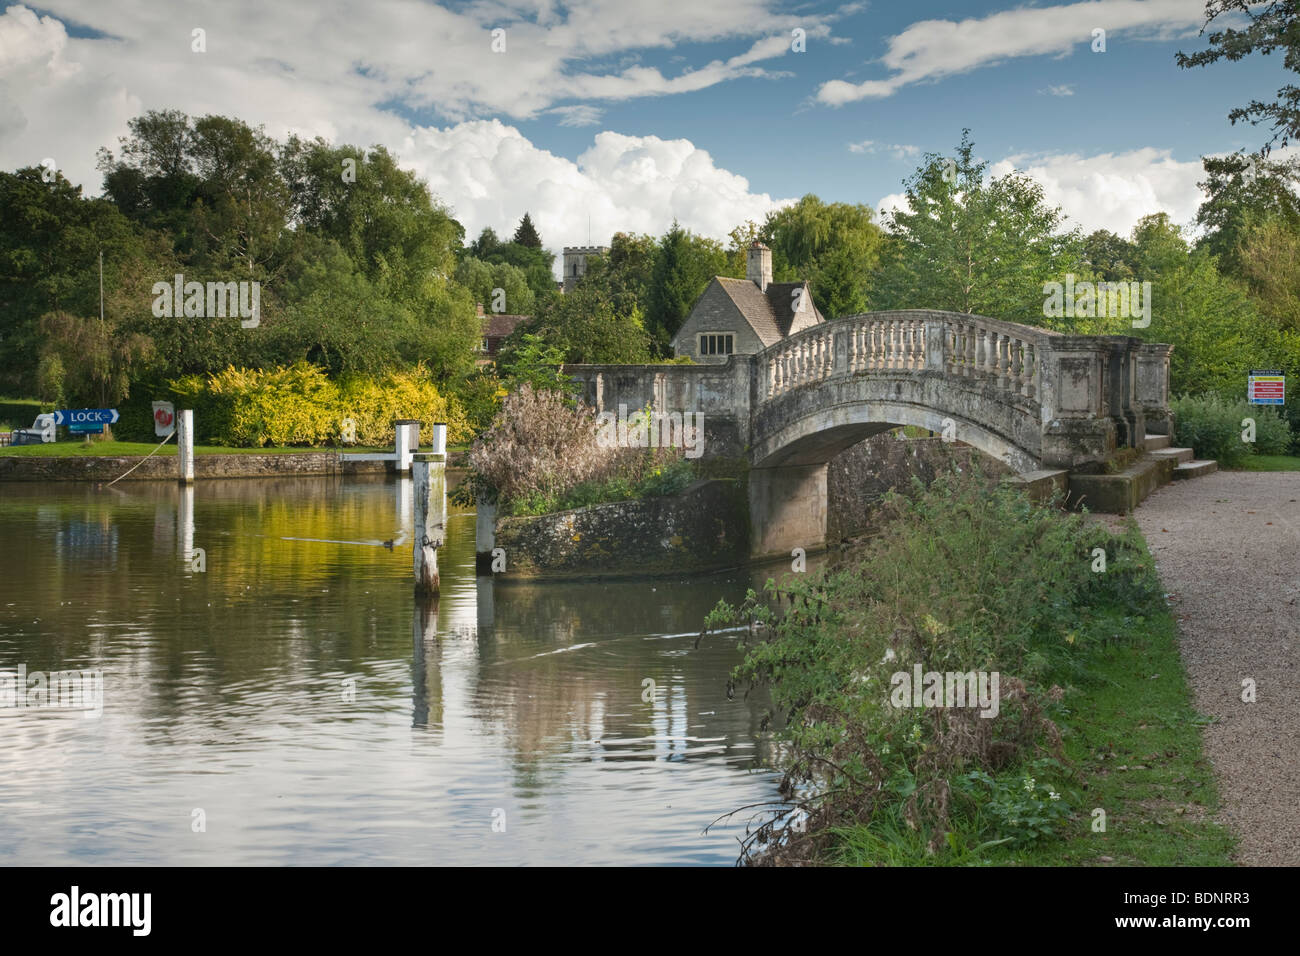 Footbridge at Iffley Lock on the River Thames at Oxford, Oxfordshire, Uk - Stock Image